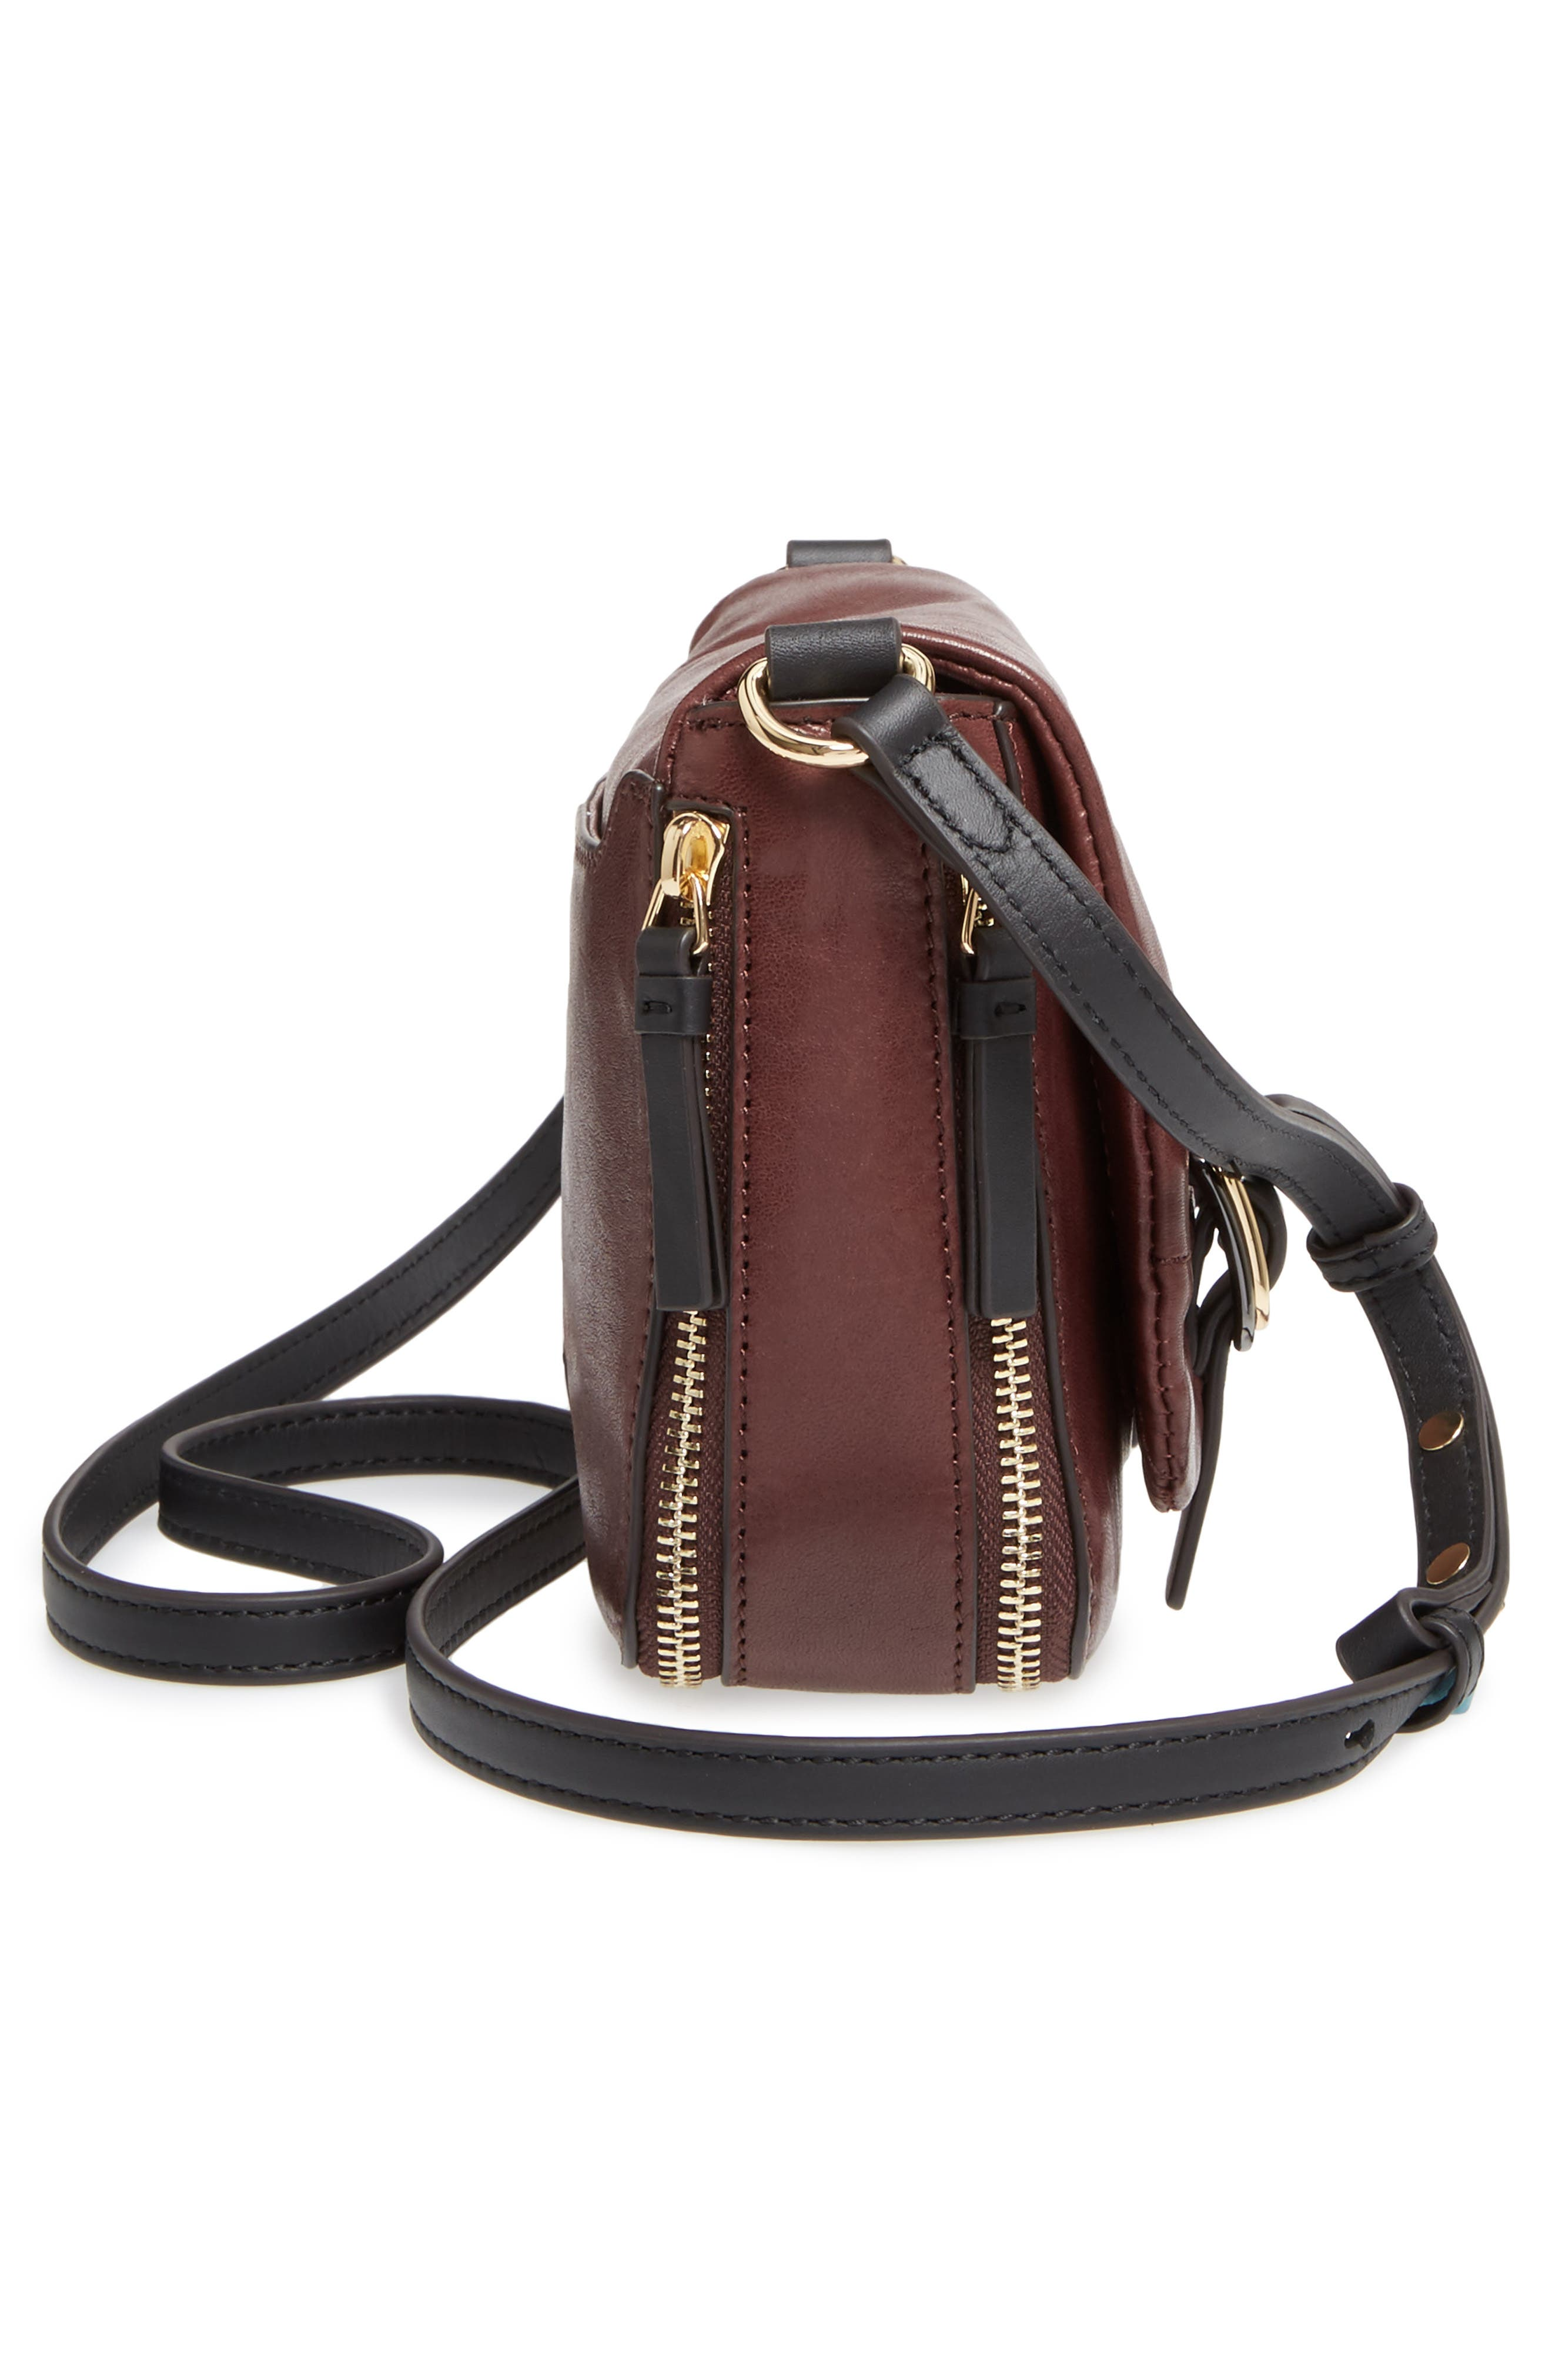 Delos Leather Crossbody Bag,                             Alternate thumbnail 4, color,                             Black Cherry